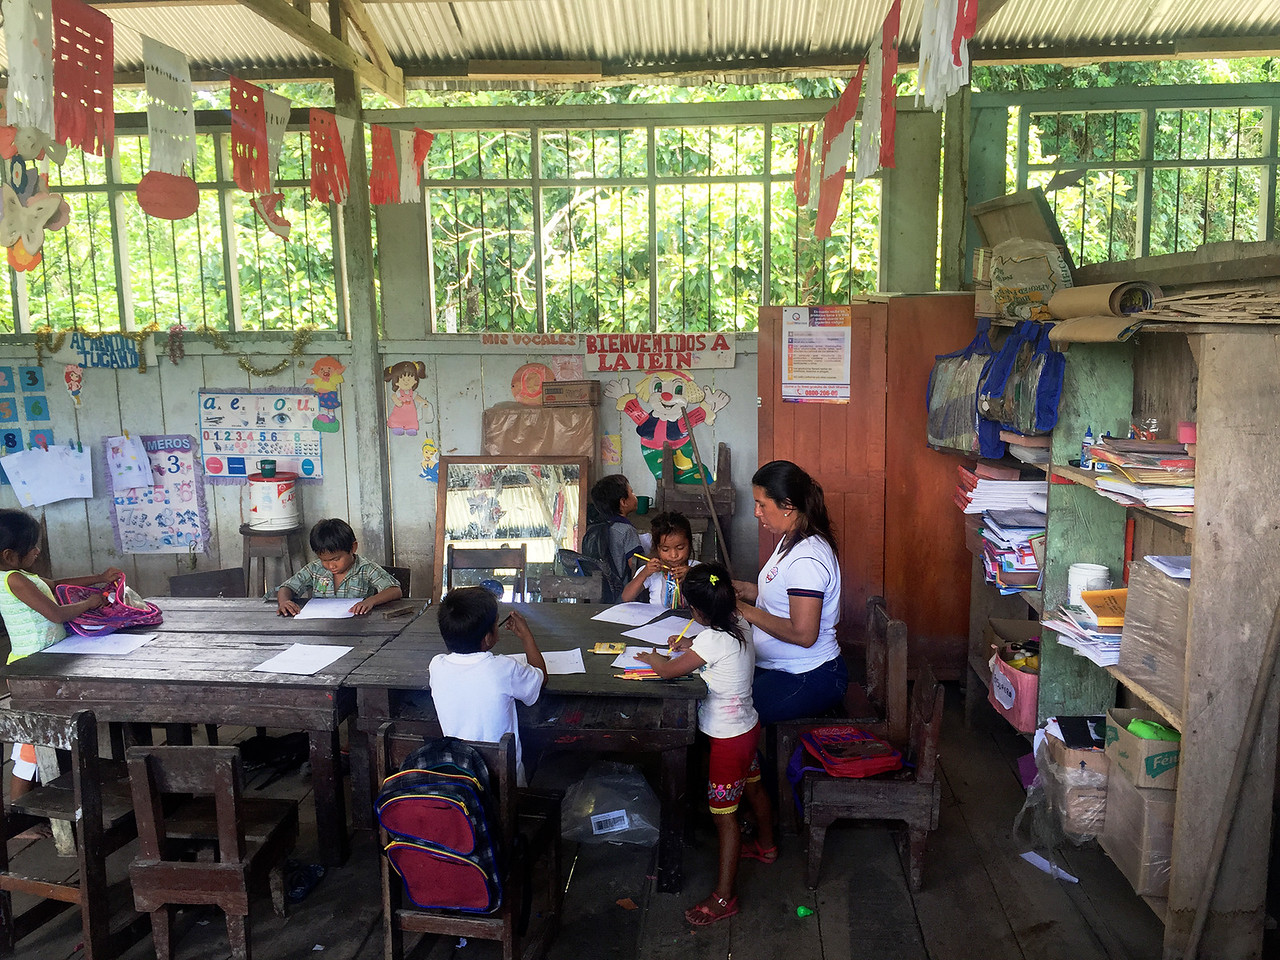 A school in one of the villages in Amazon, Peru